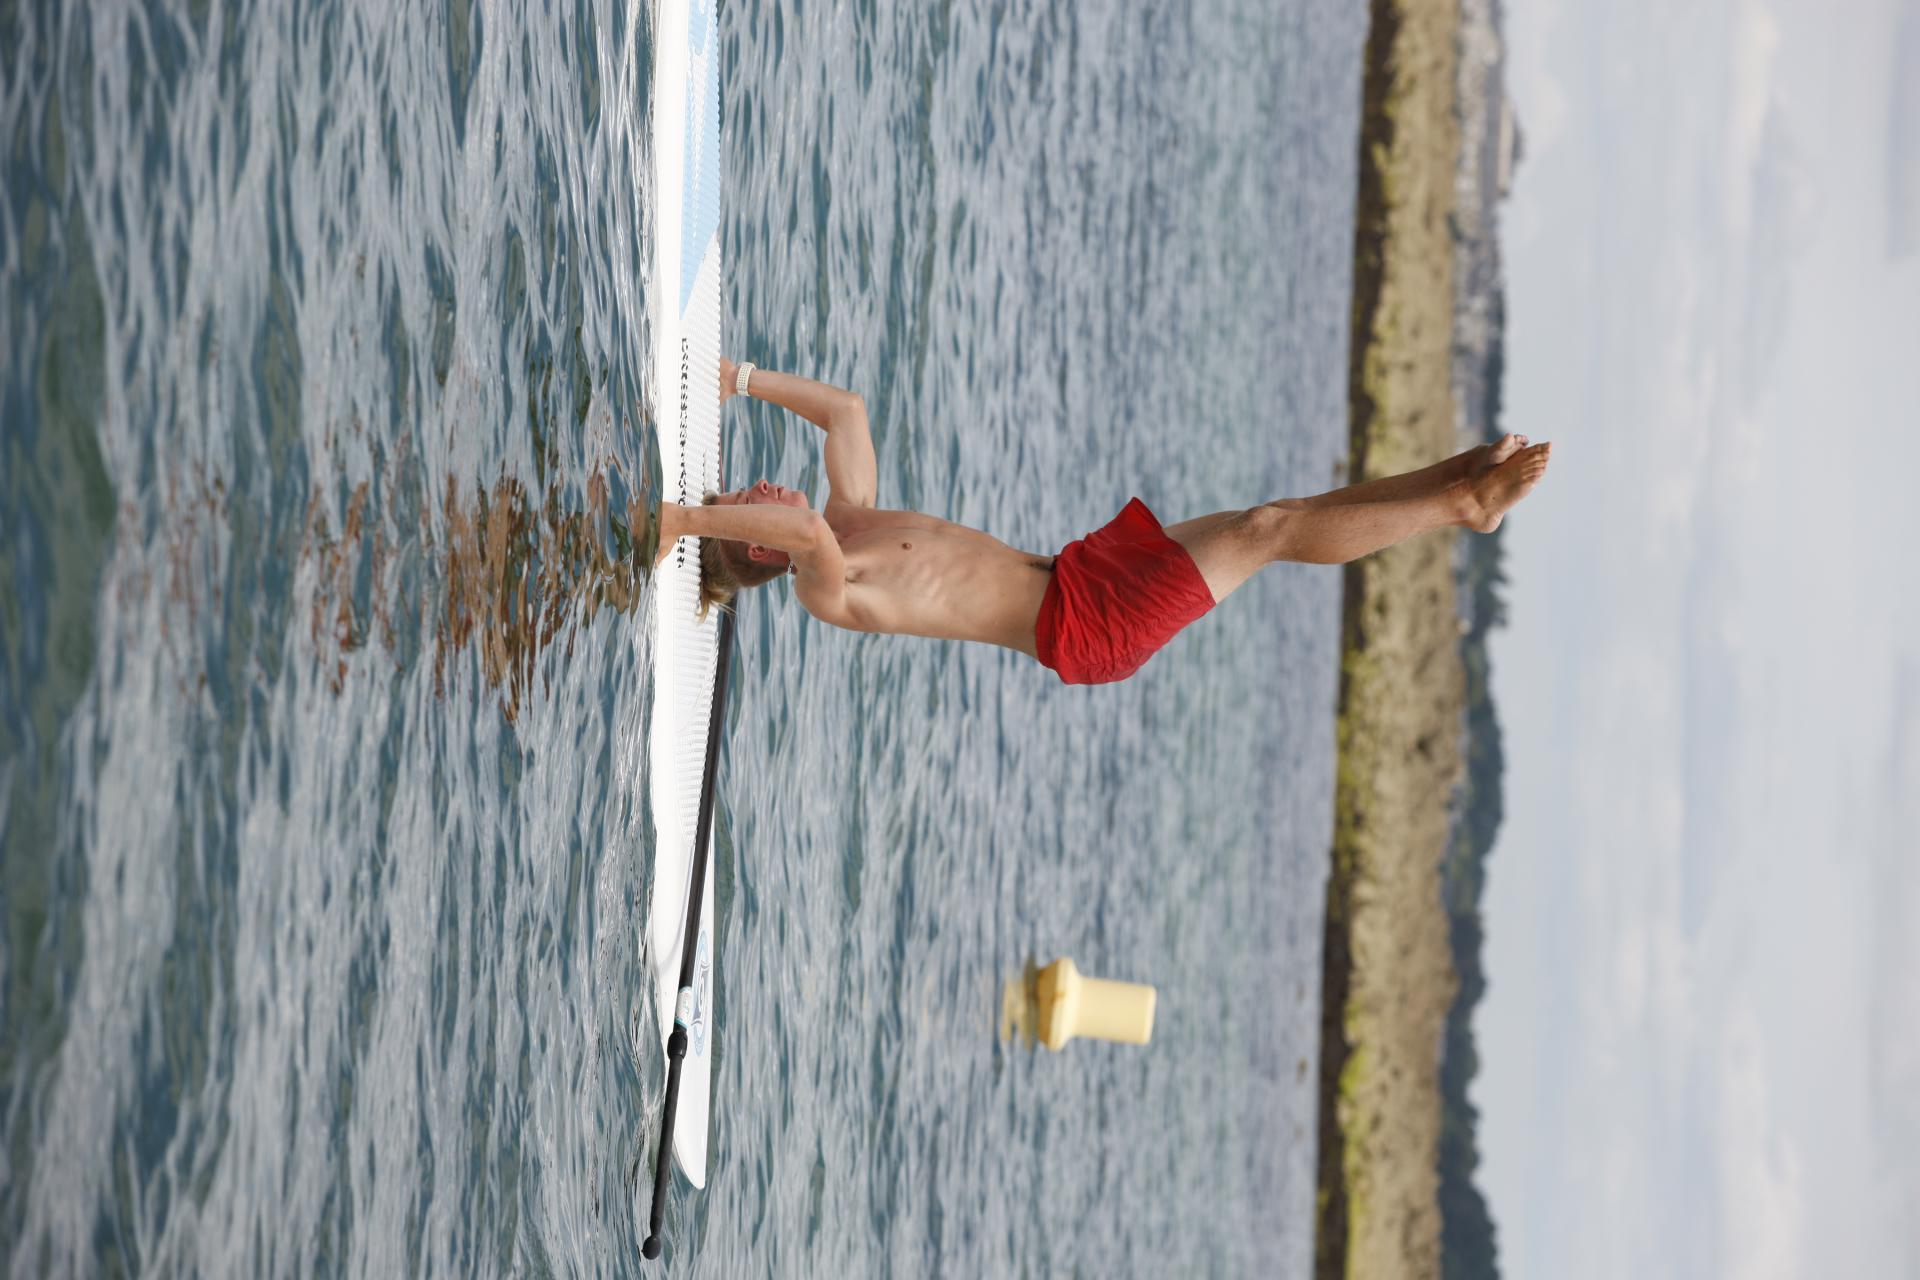 Club Nautique du Rohu - Yoga Paddle, bravo Ilan !